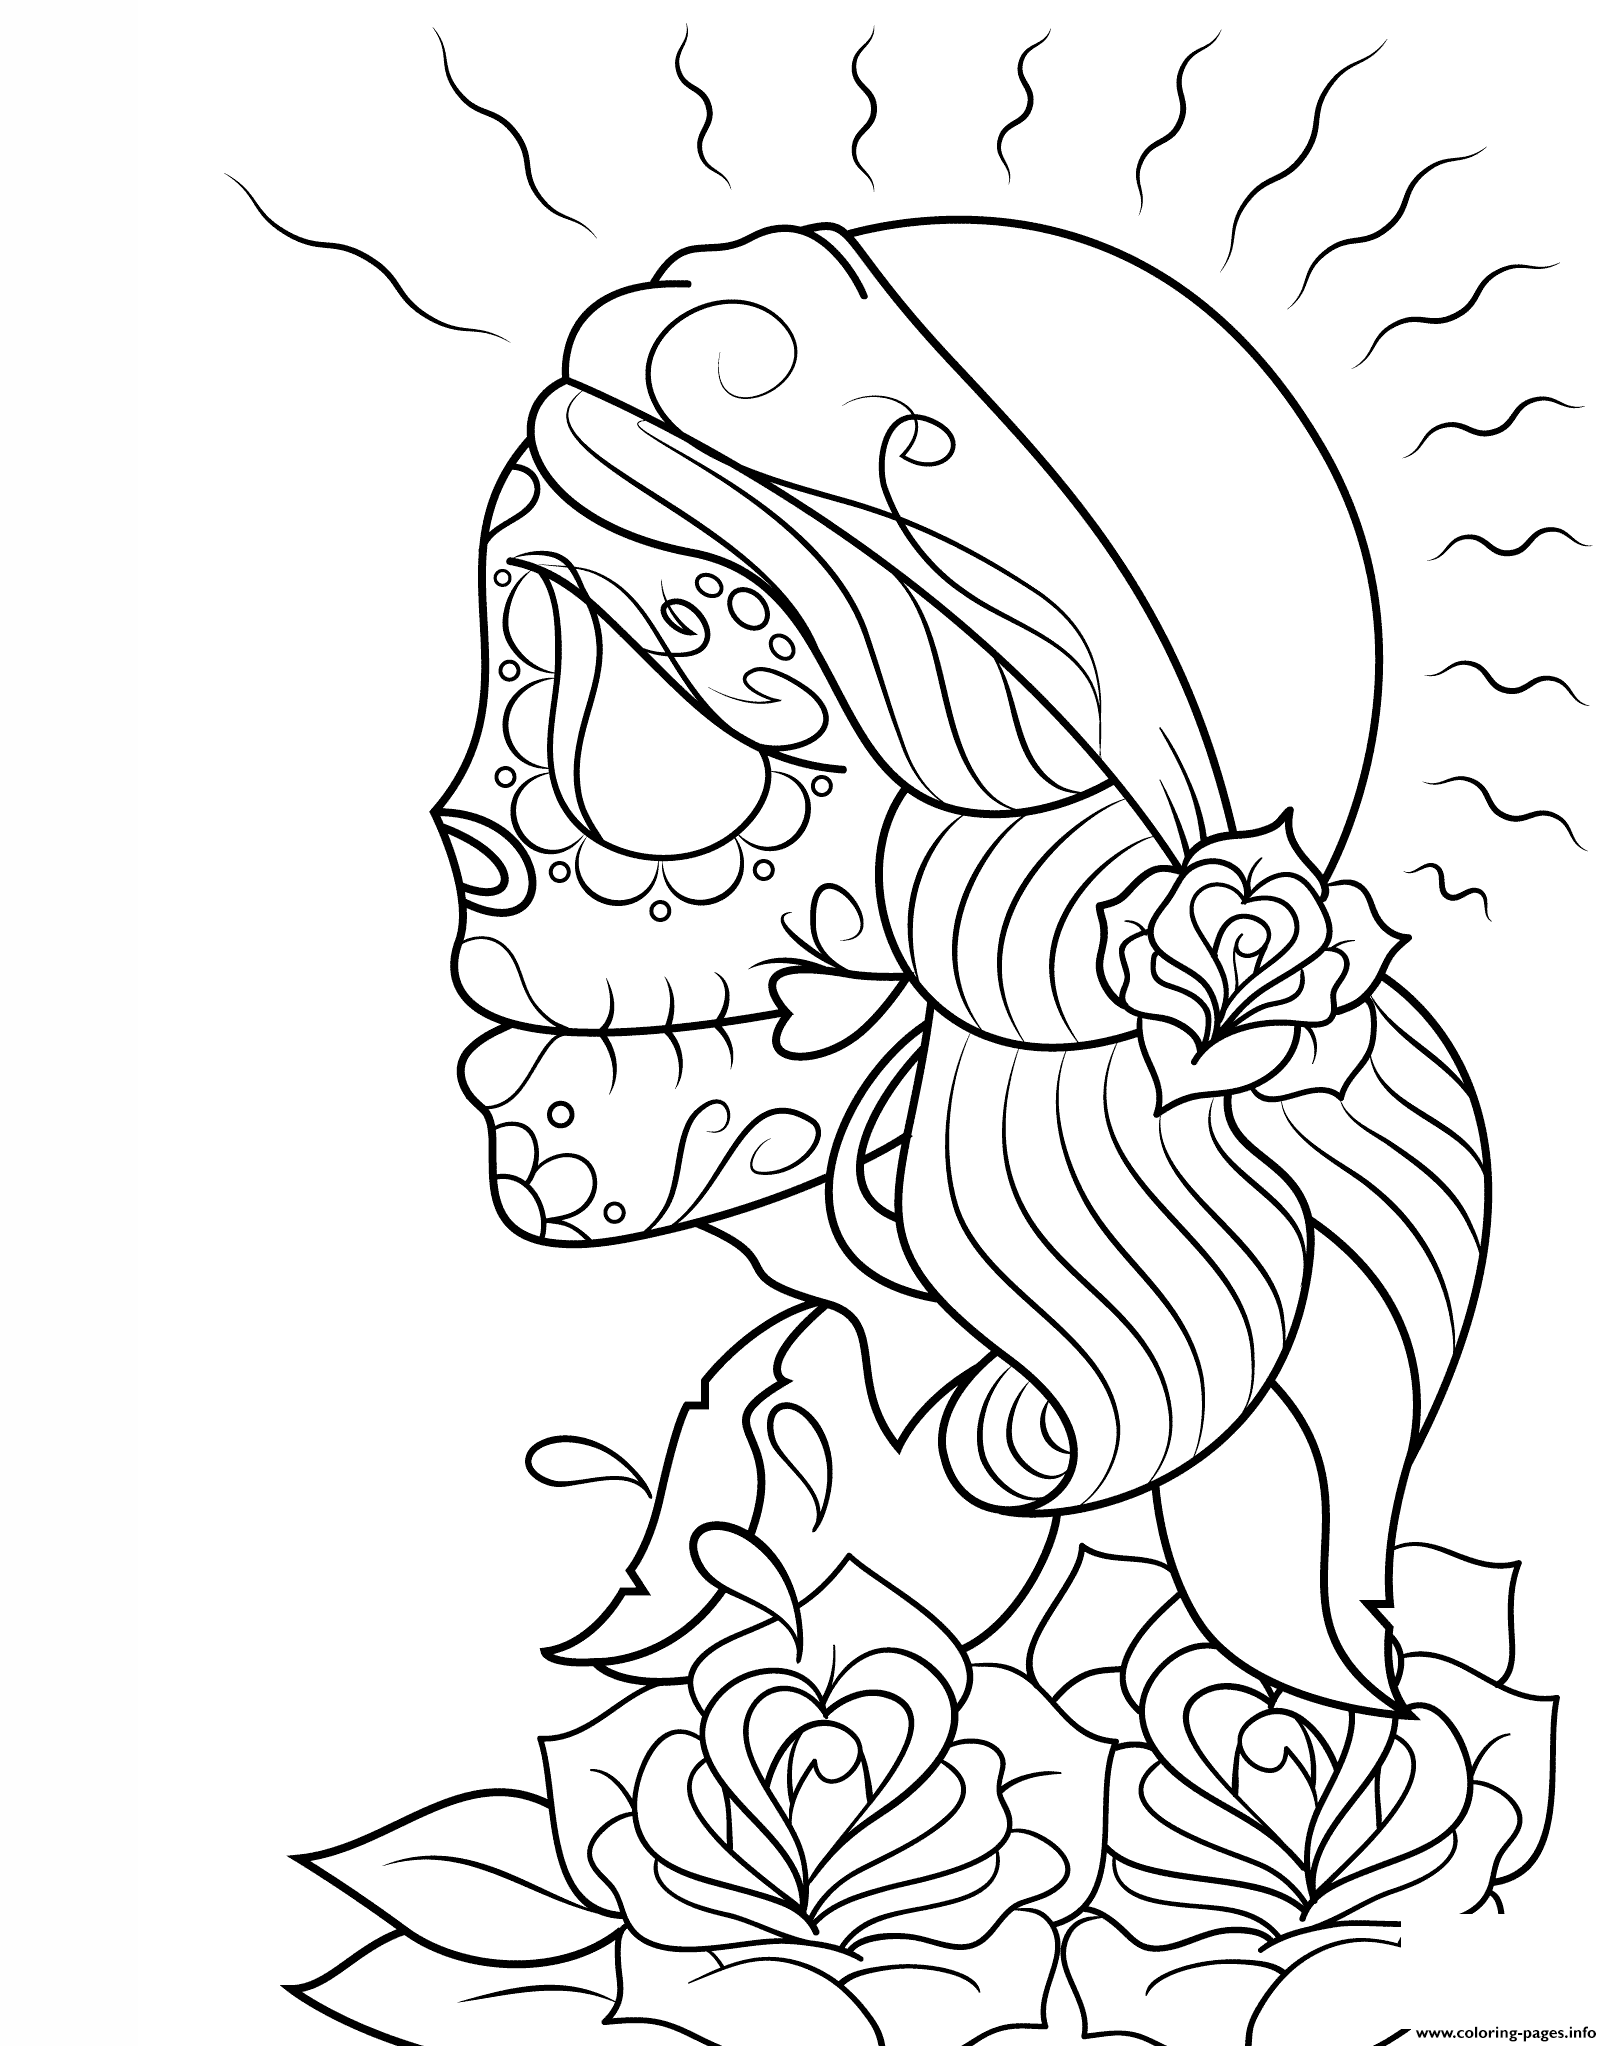 Day Of The Dead Gypsy By Asatorarise Calavera Coloring Pages Printable